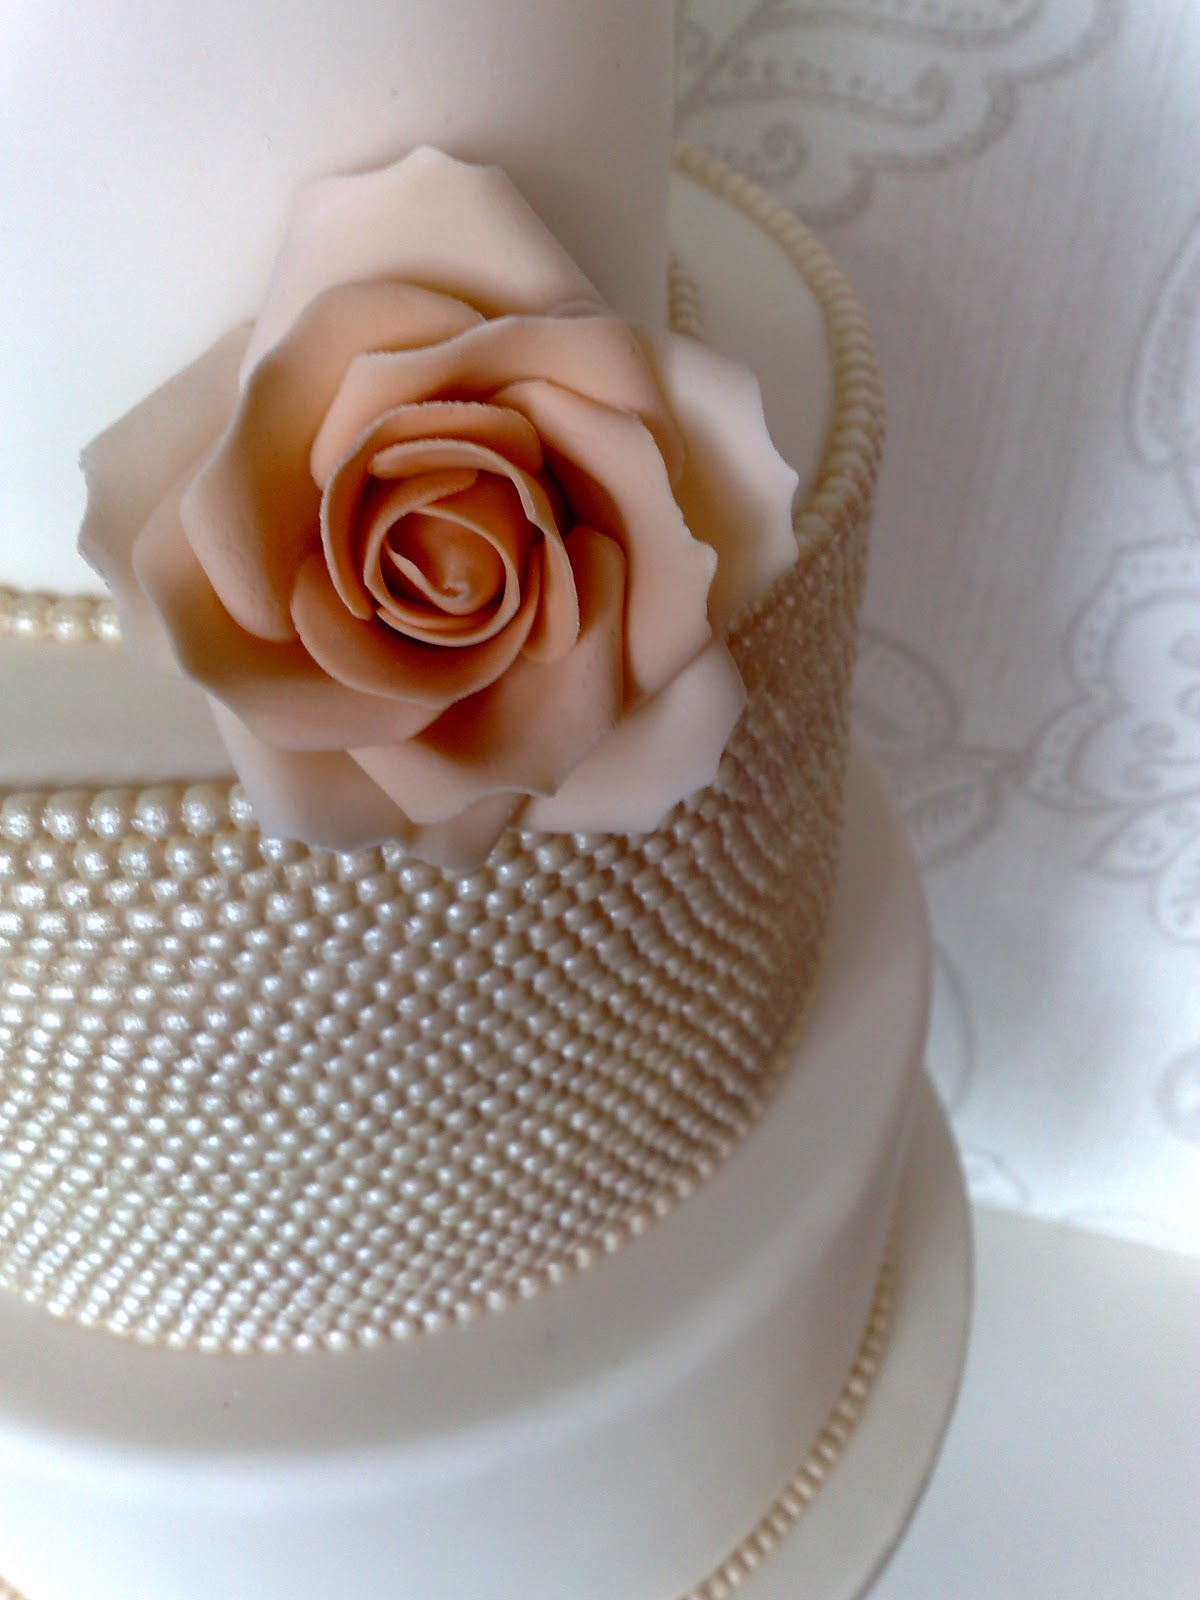 roses and pearls - photo #41